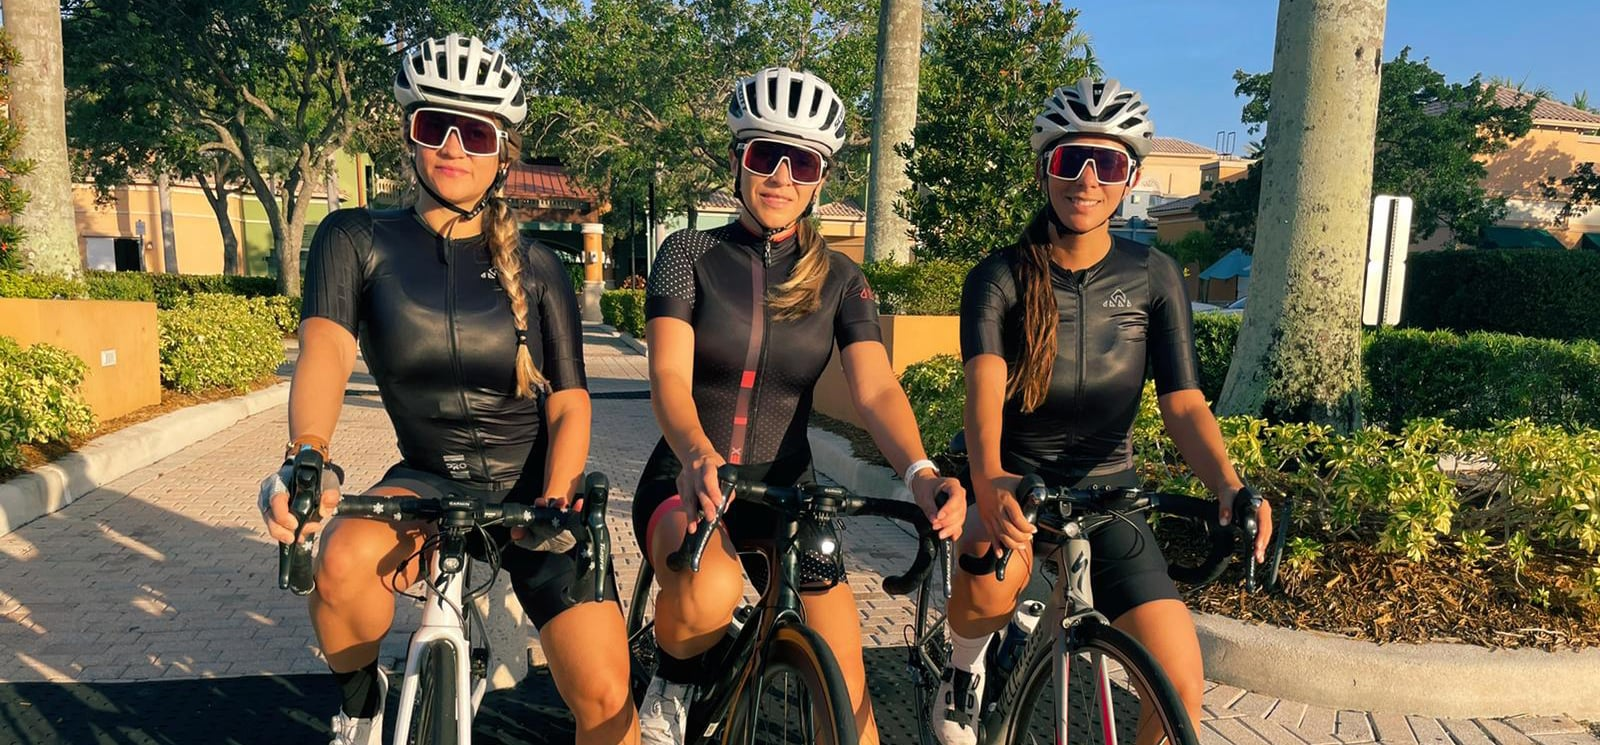 Women's triathlon clothing, cycling gear, running apparel, swimming clothes